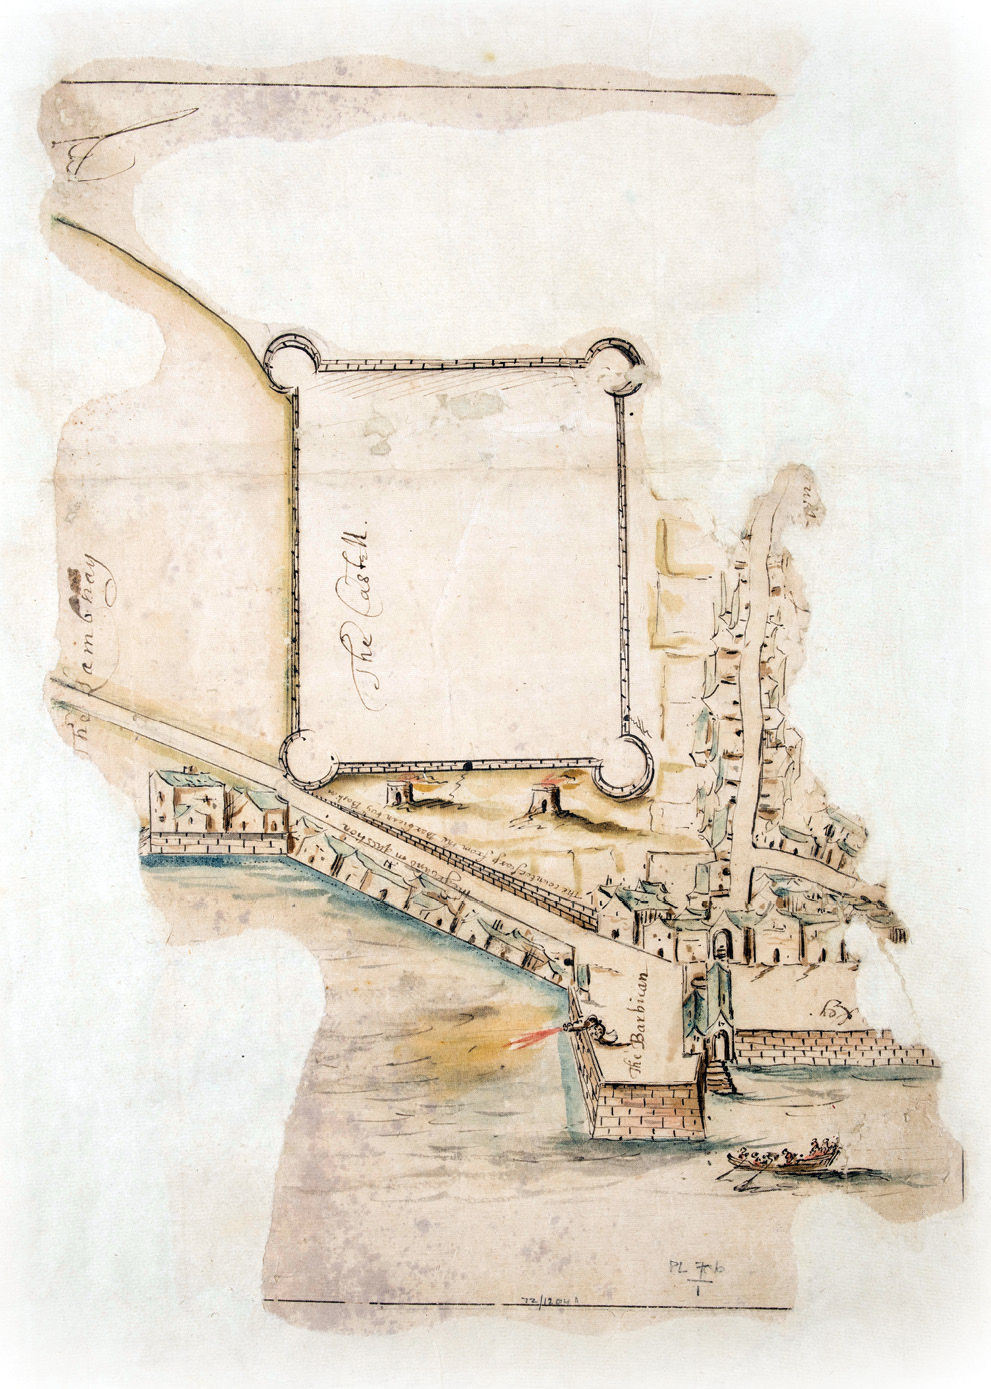 Above This plan of Plymouth's Barbican dates from the early 1600s. It includes a depiction of the steps that the Mayflower passengers may have used to depart Plymouth; today this location is marked with a stone portico (top opposite).